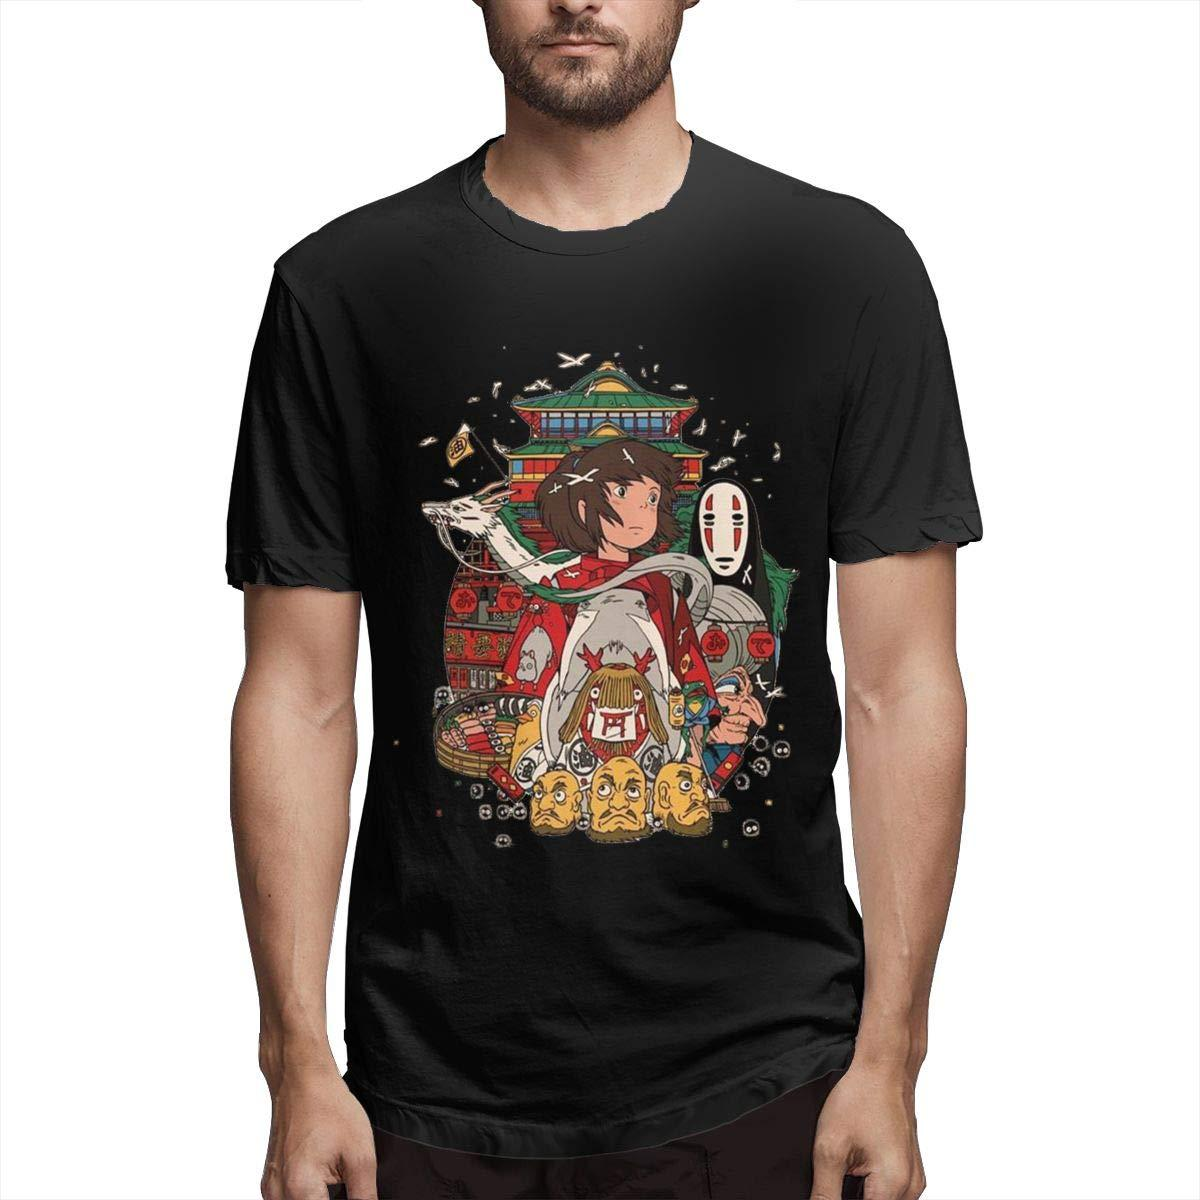 Halo Spirited Away Men's Classic Basic Soft Cotton Short T-Shirt Black Funny Print Tops Men top tee